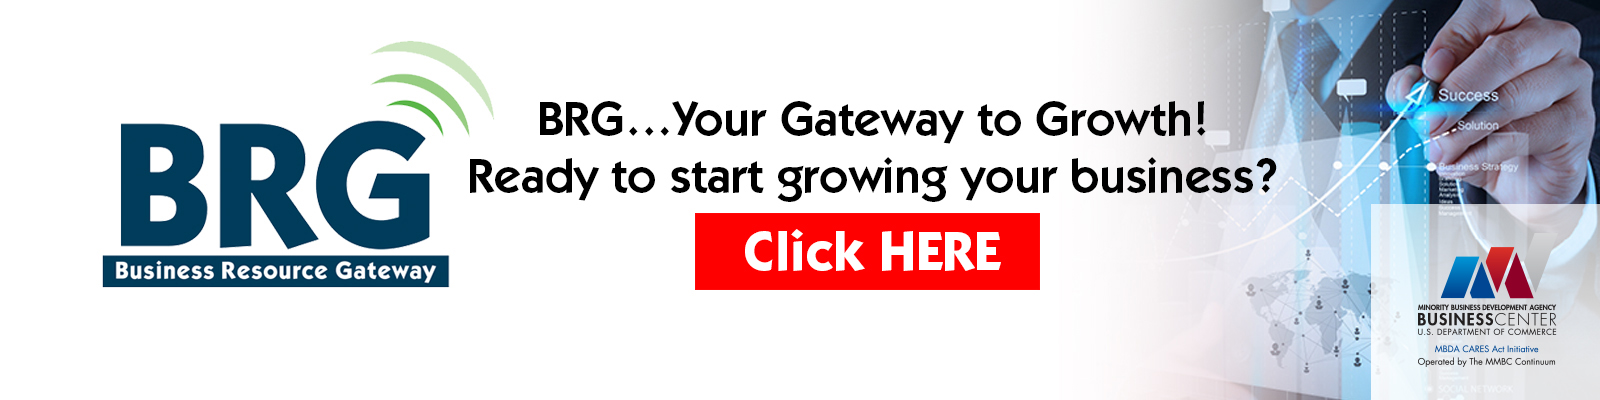 Business Resource Gateway